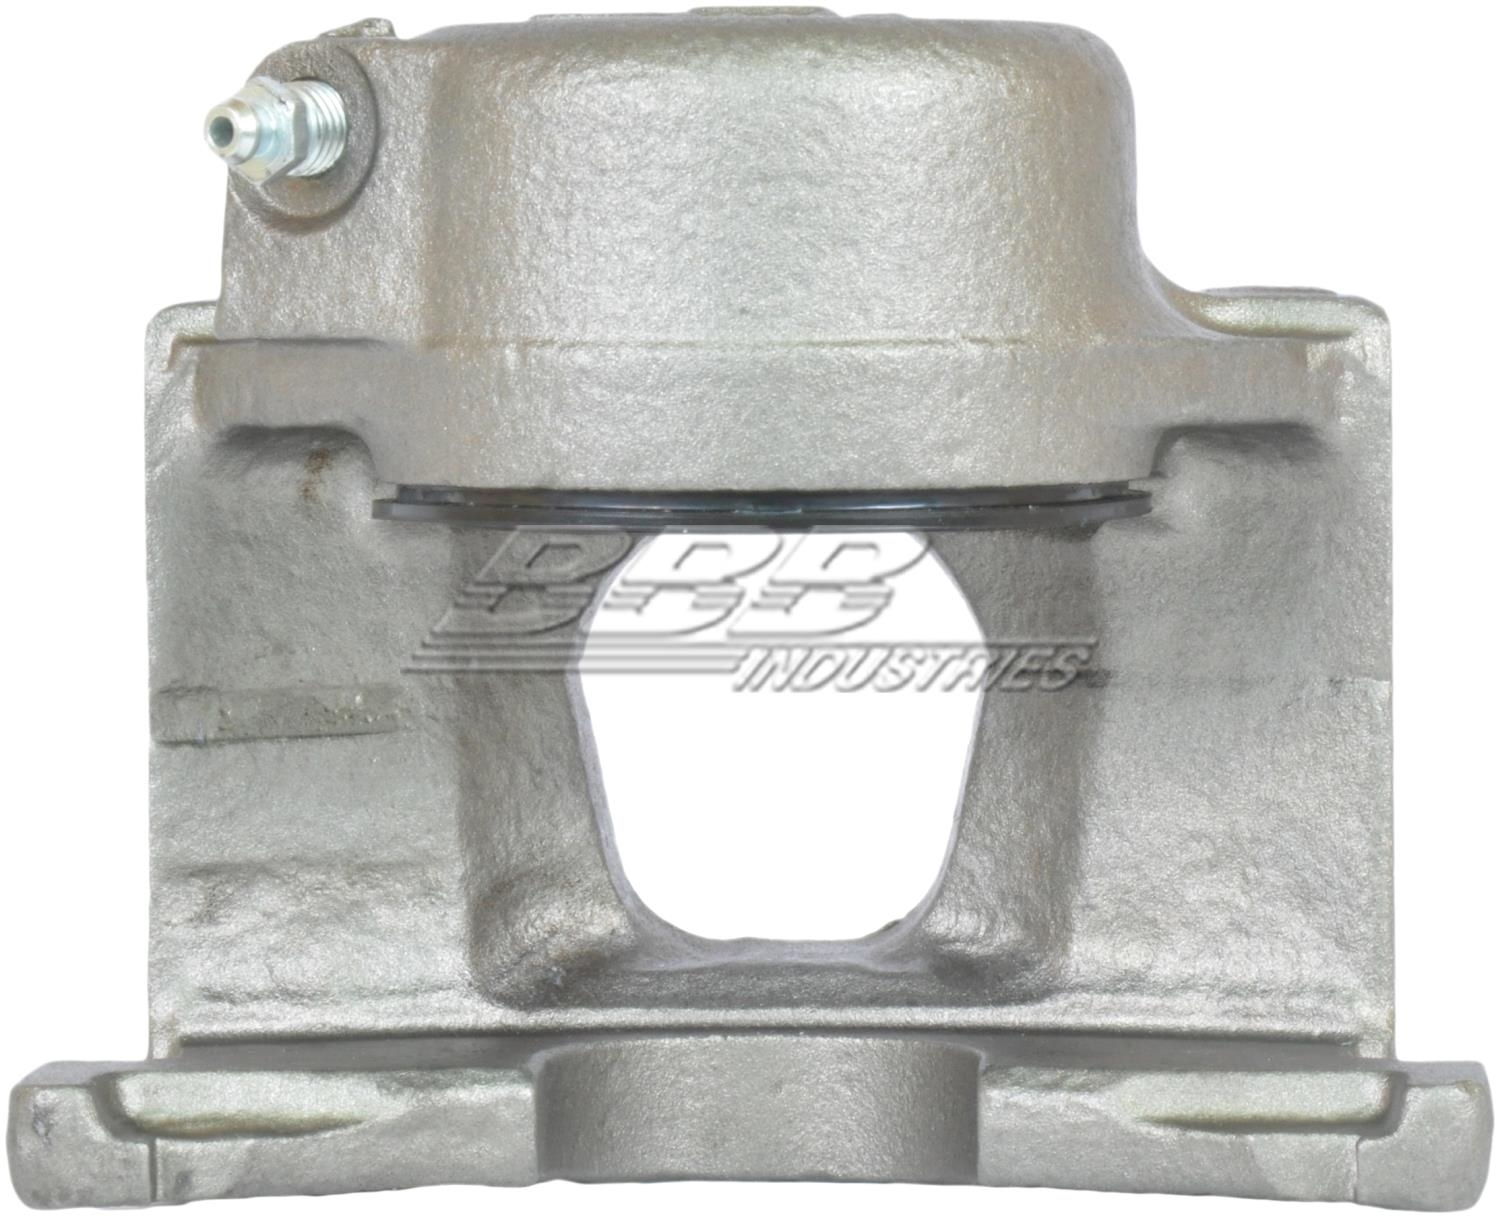 BBB INDUSTRIES - Reman Caliper W/installation Hardware (Front Right) - BBA 97-17830A